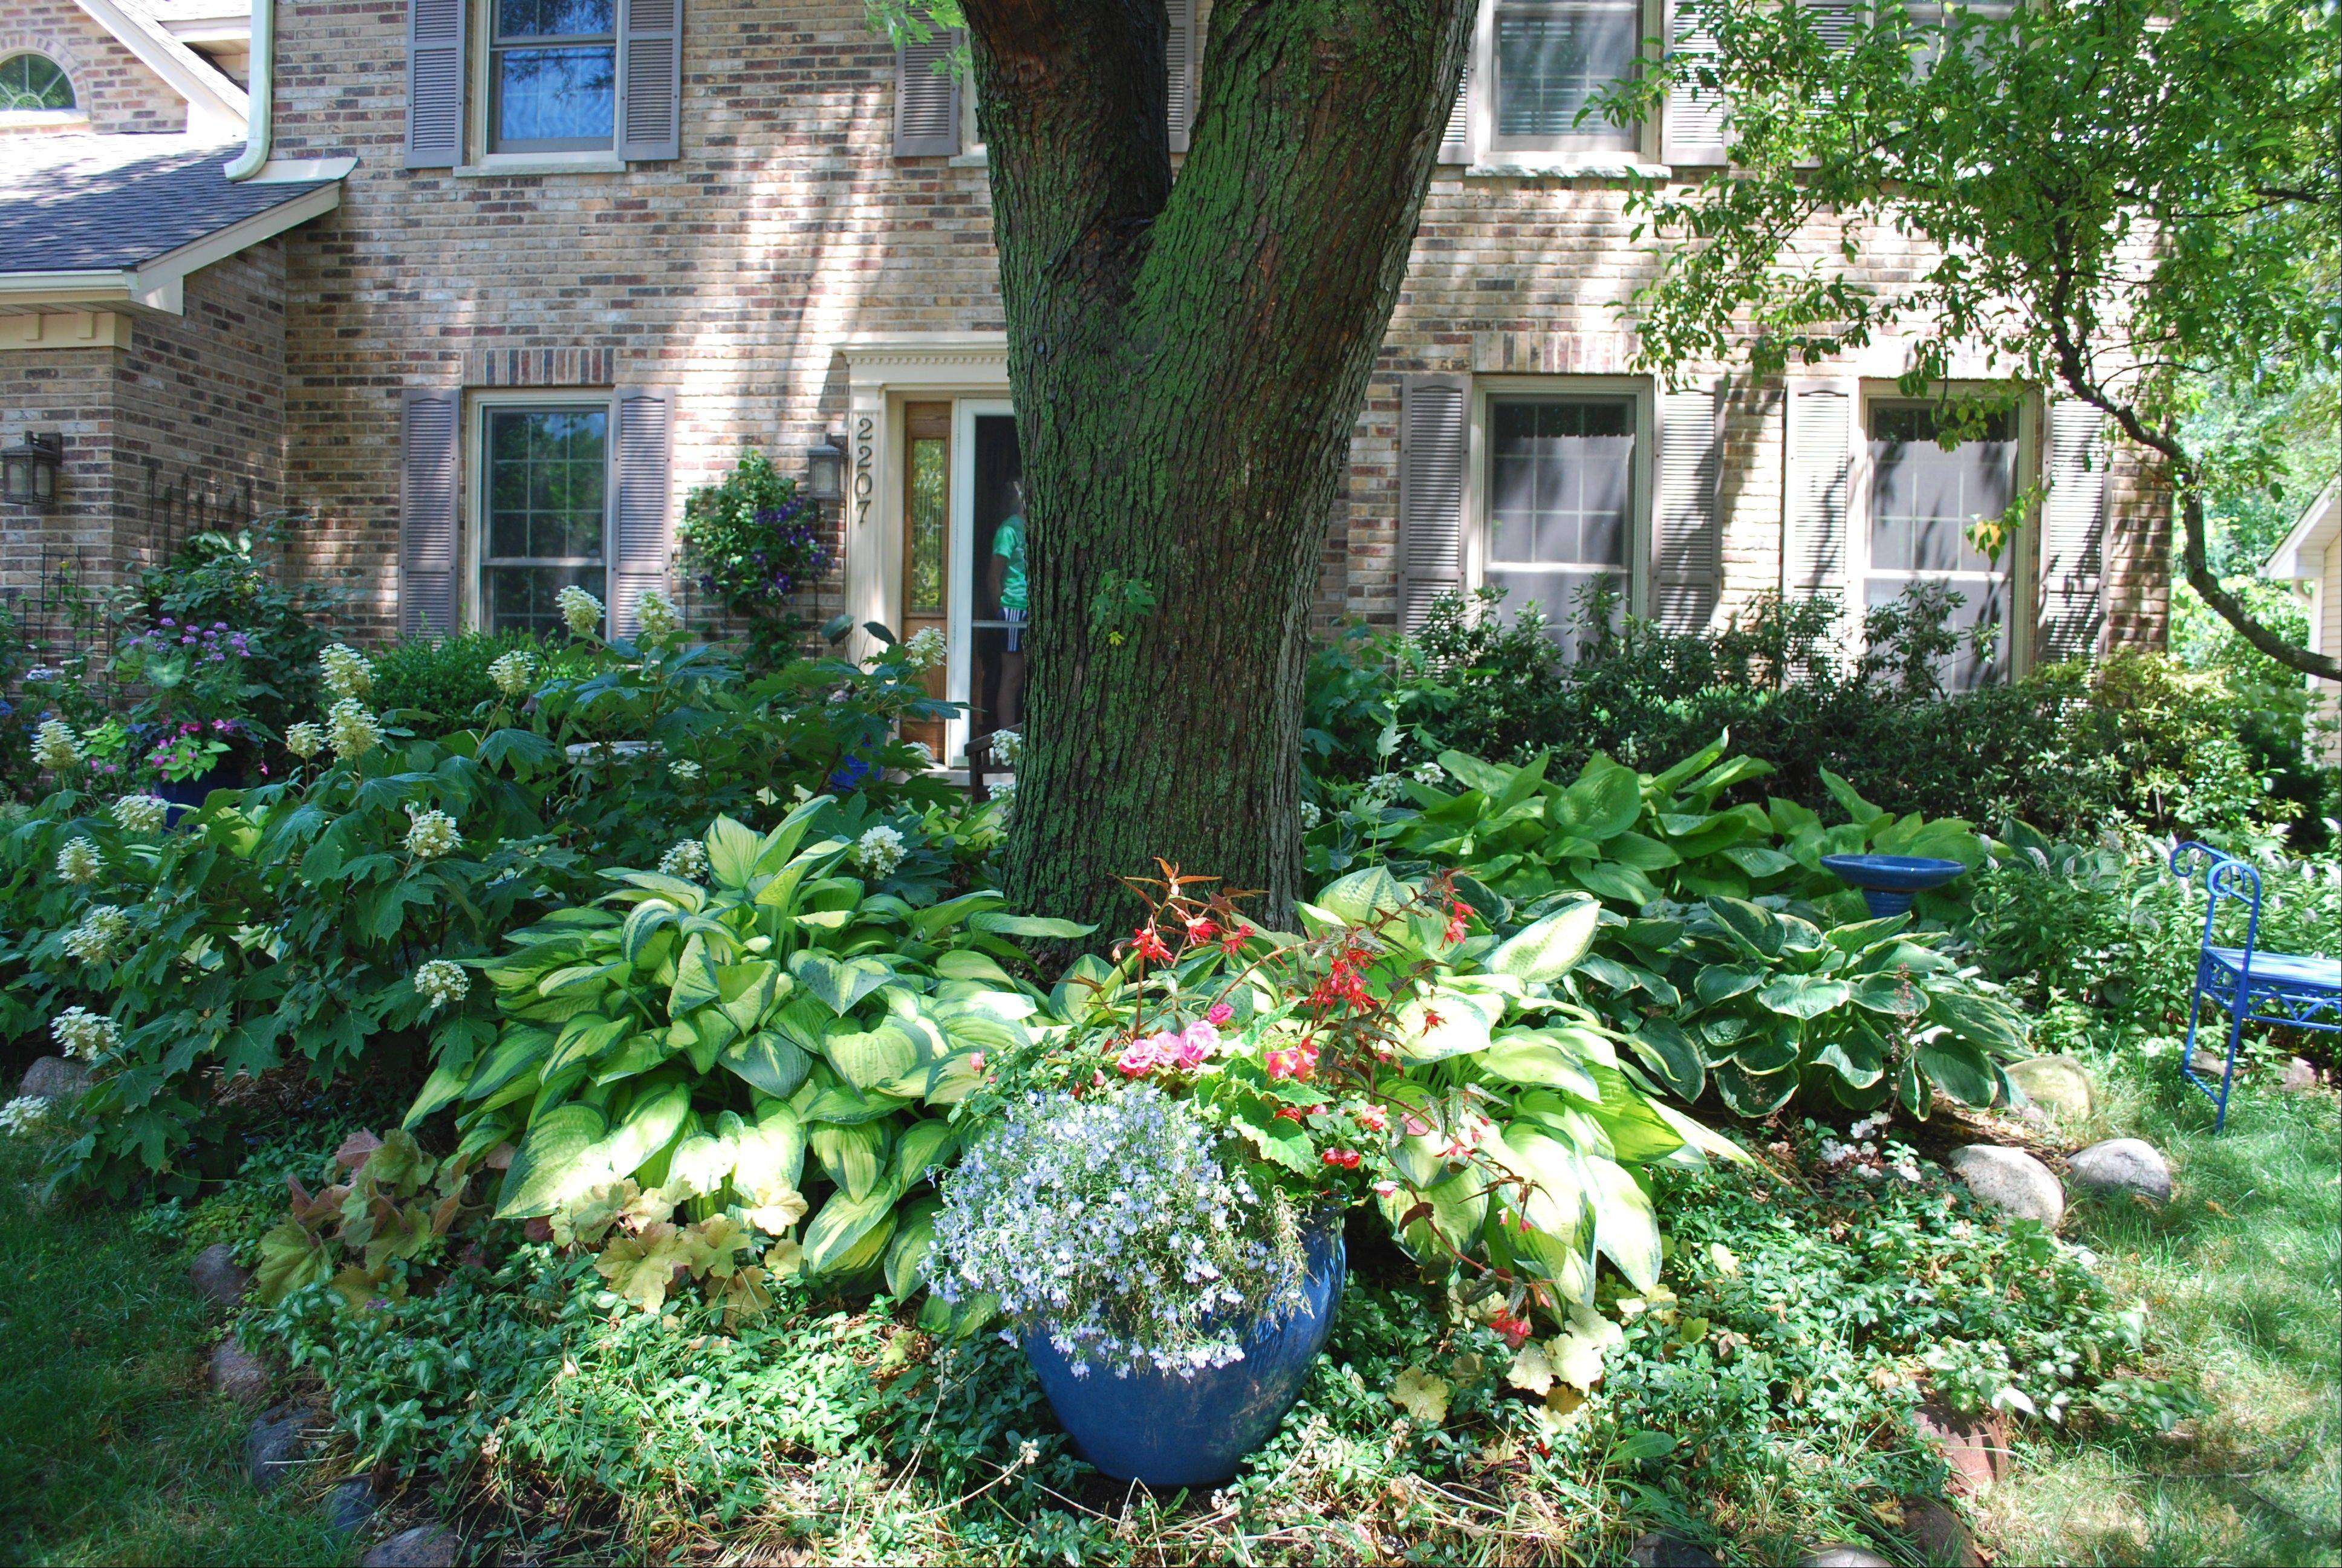 Summer in the front yard is full of shade and shade-loving plants under the silver maple tree.